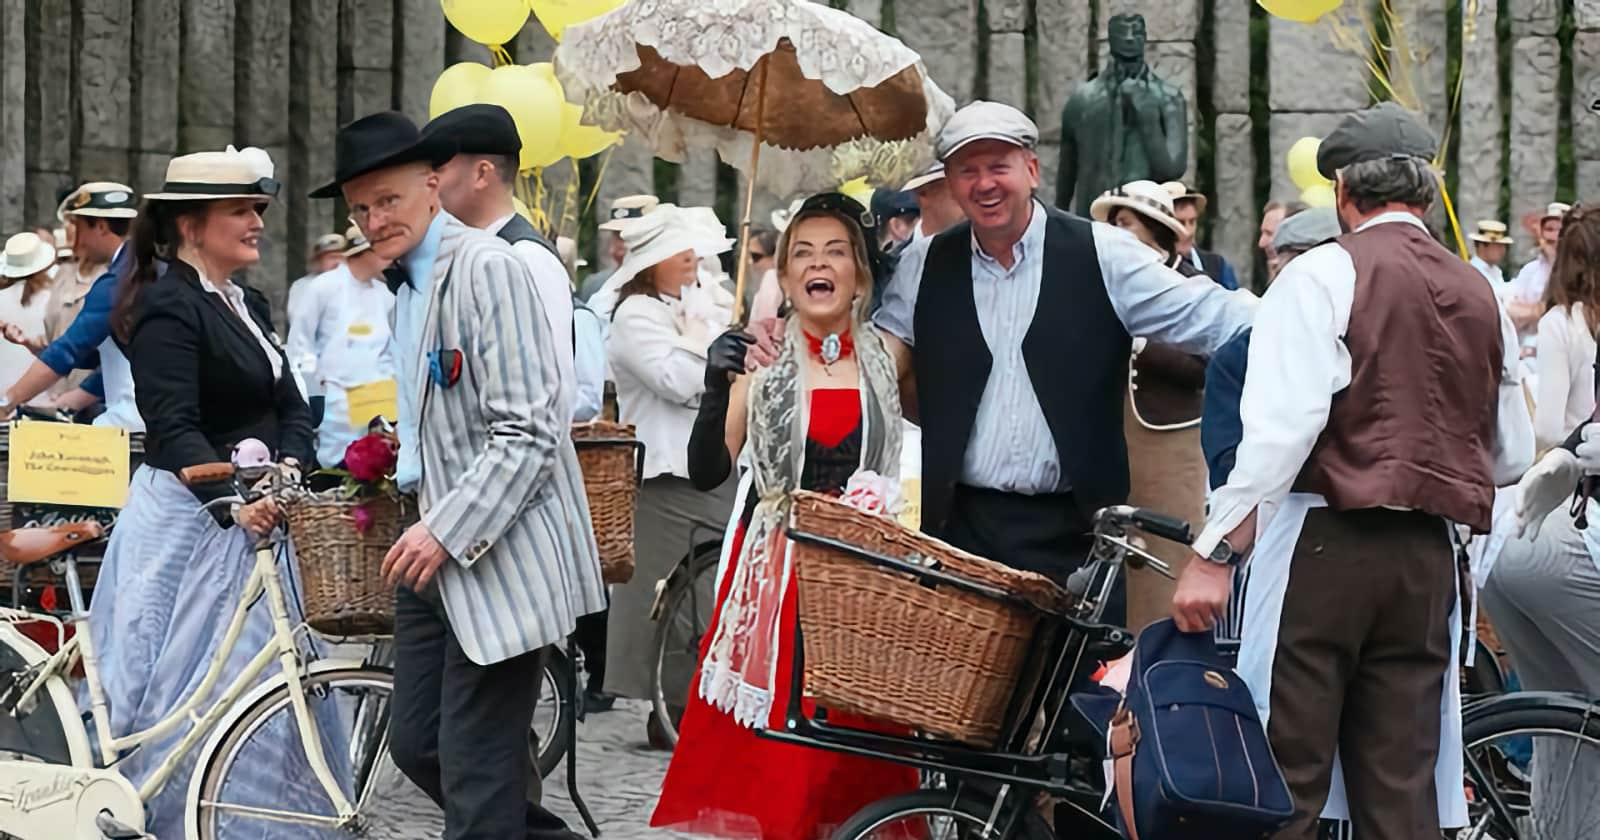 People dressed in period costumes to celebrate Bloomsday